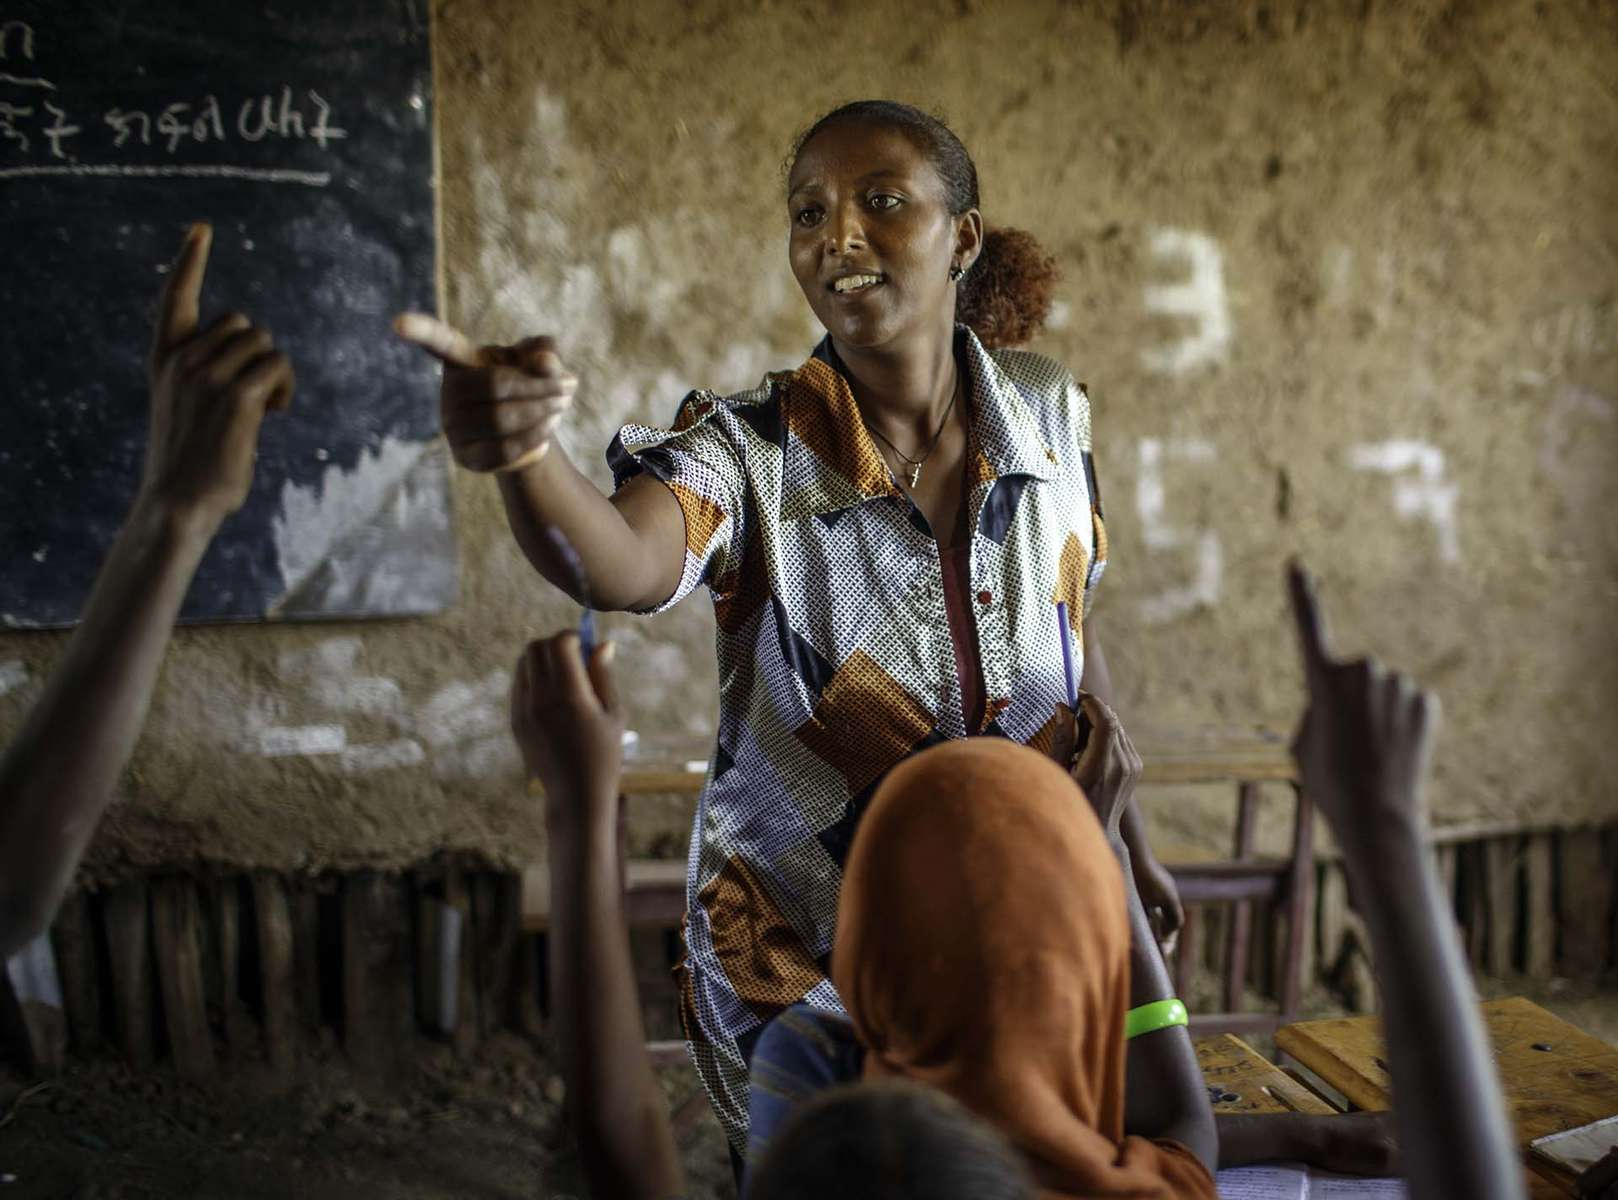 Bizuye Solomon, 26, teaches at Alula ABEC (Alternative Basic Education Center) for children of pastoralist in Afar region of Ethiopia Tuesday 8 April, 2014. Families of the majority of her students are pastoralists and move with greener pasture for their livestock. Thus ABEC, Alternative Basic Education Center is crucial for the education for her and her family.